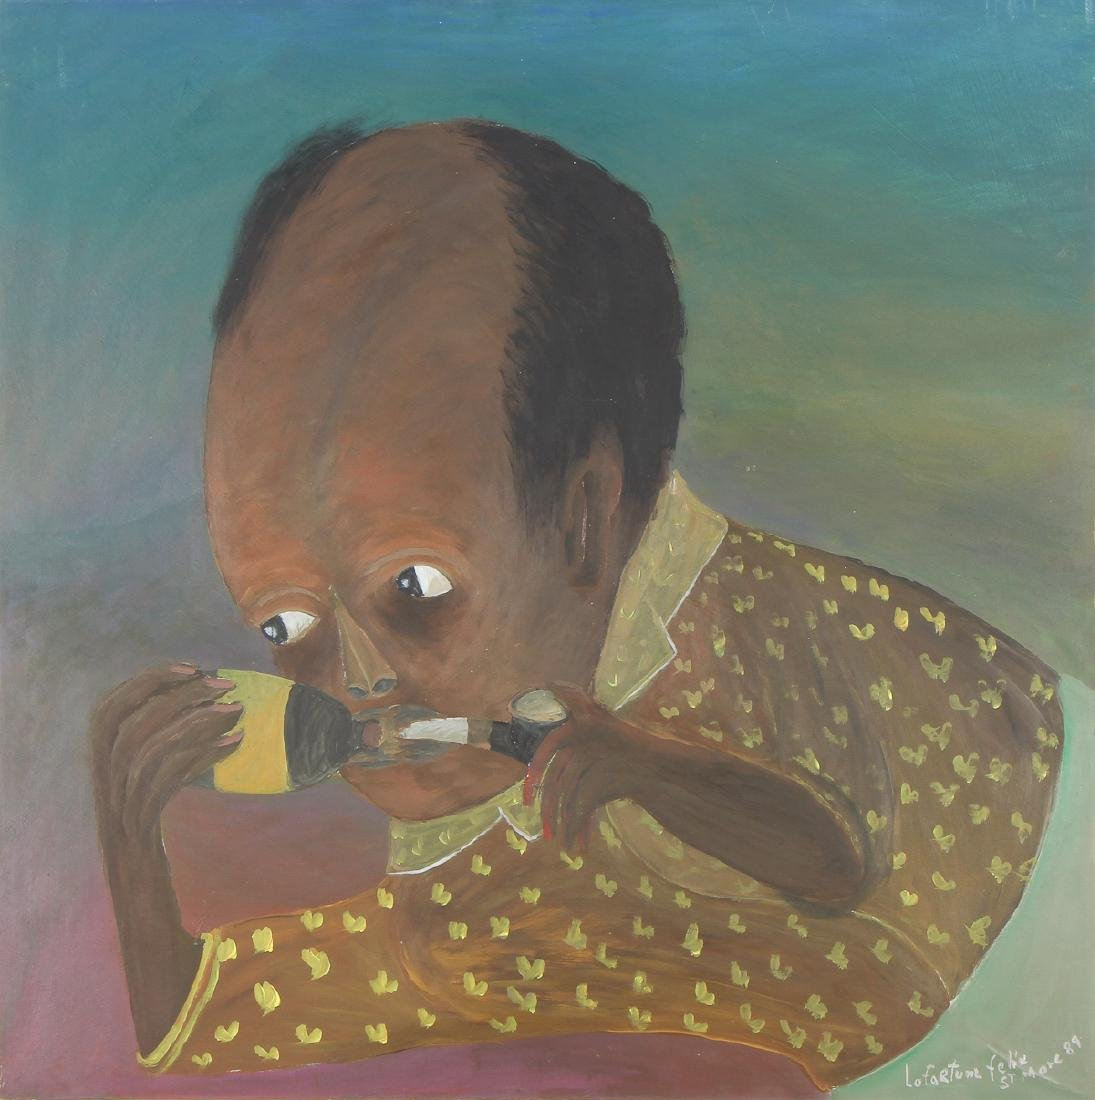 LaFortune Felix (Haitian/Aritbonite, 1933-2016)